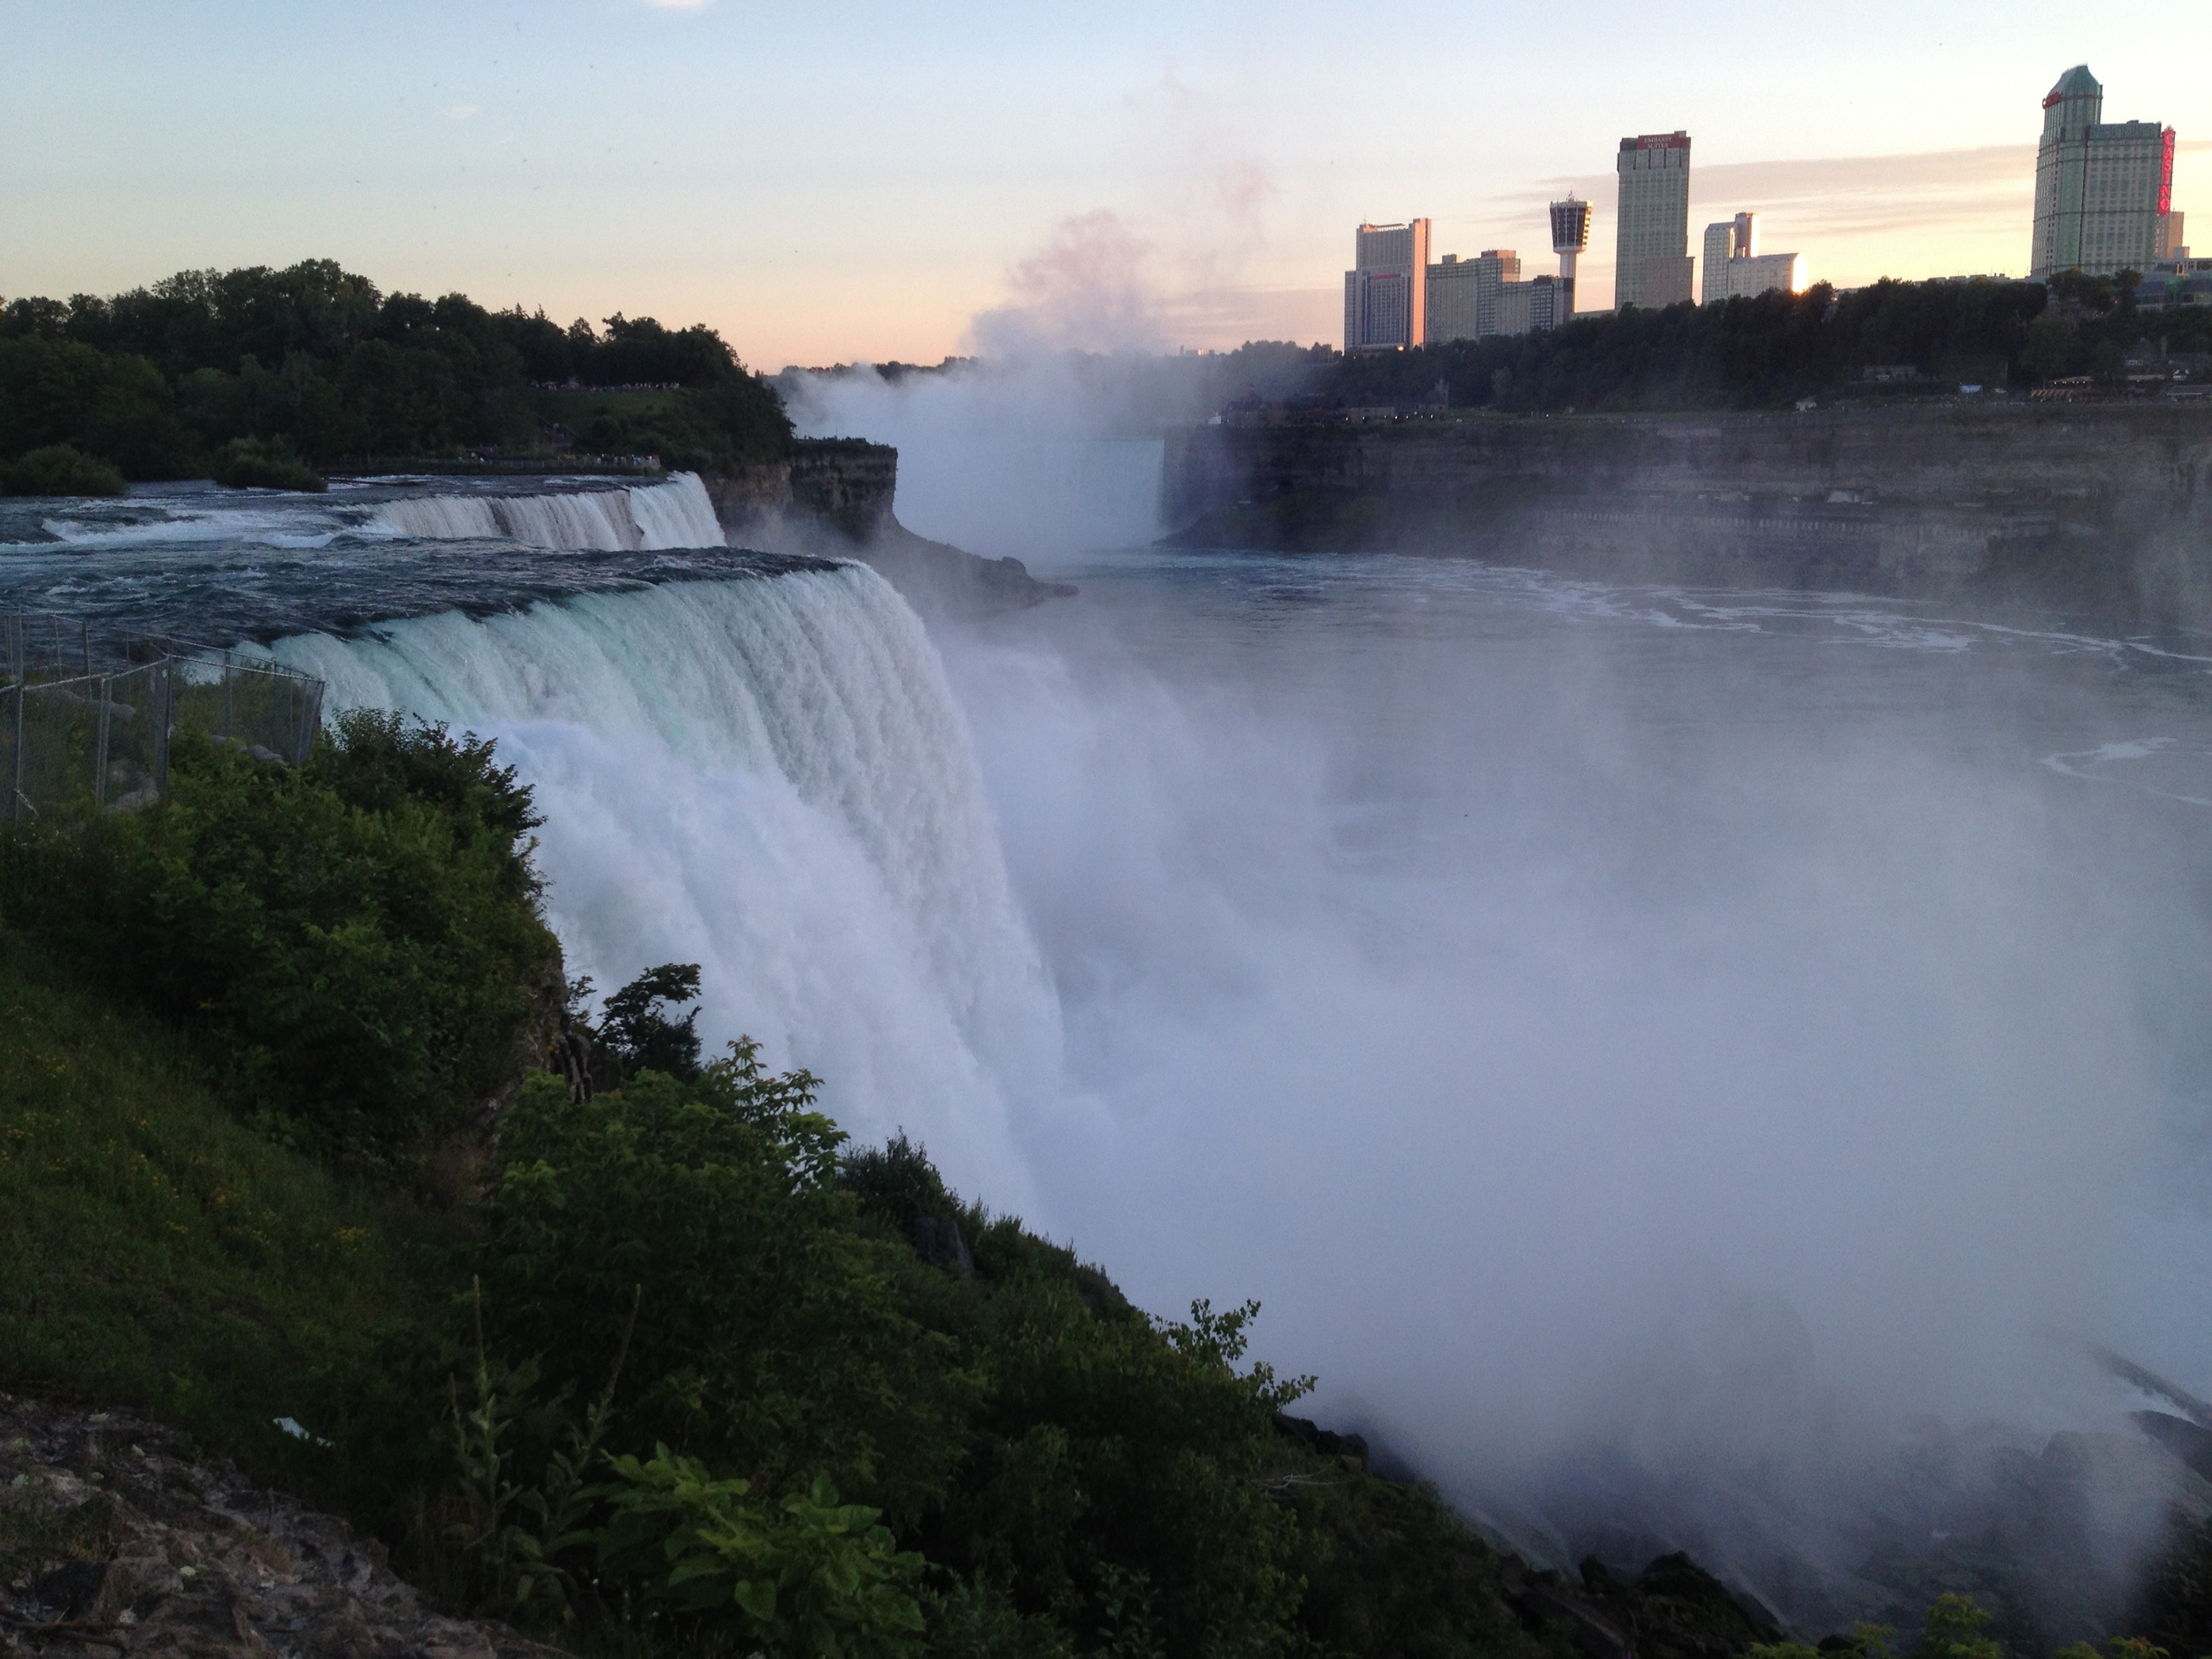 Here's an interesting picture of Niagara falls that I took...